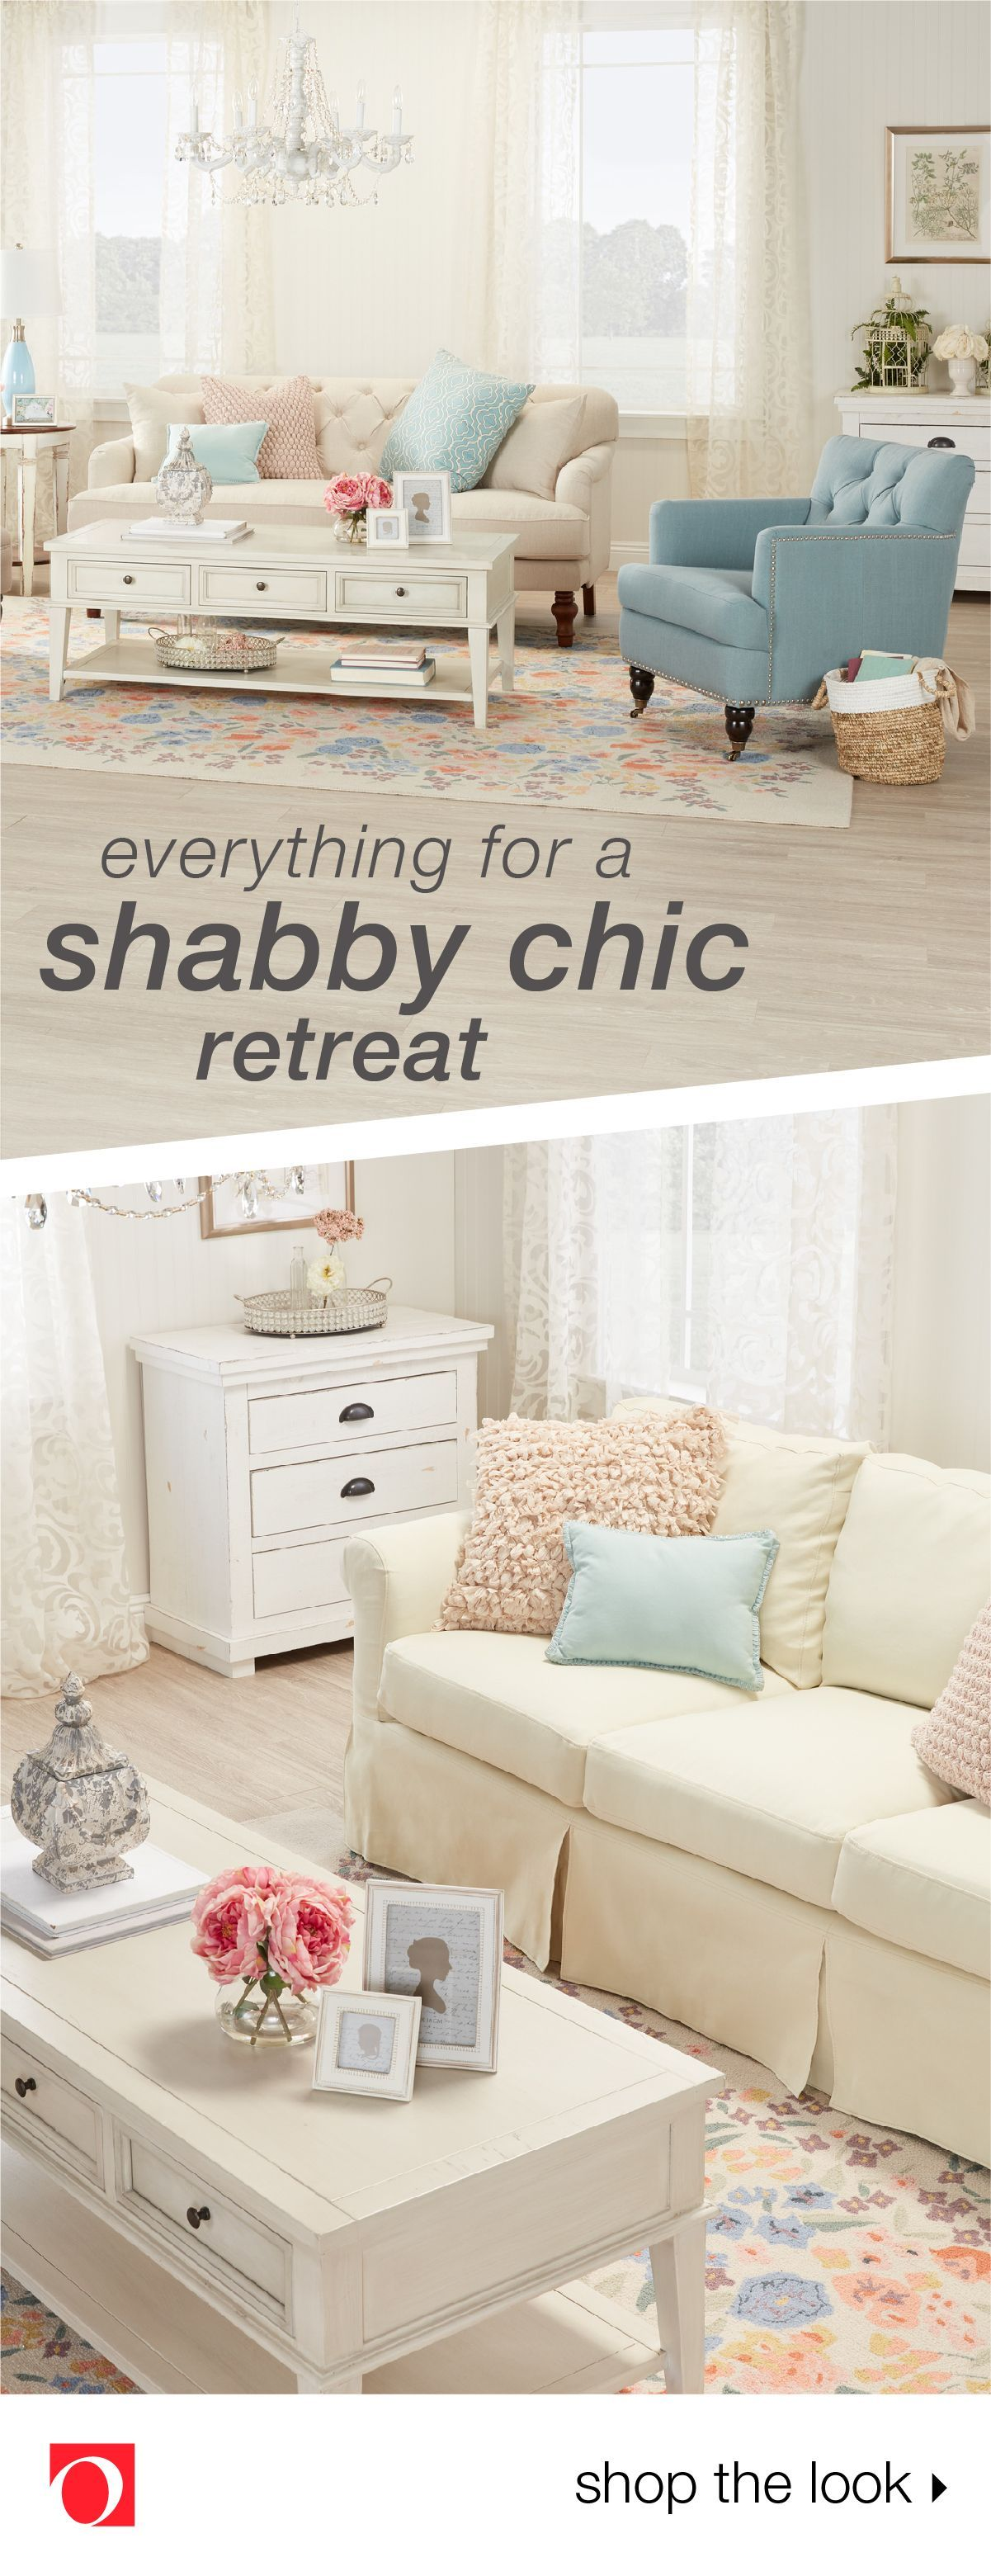 A blend of classic cottage charm and wellworn comfort shabby chic